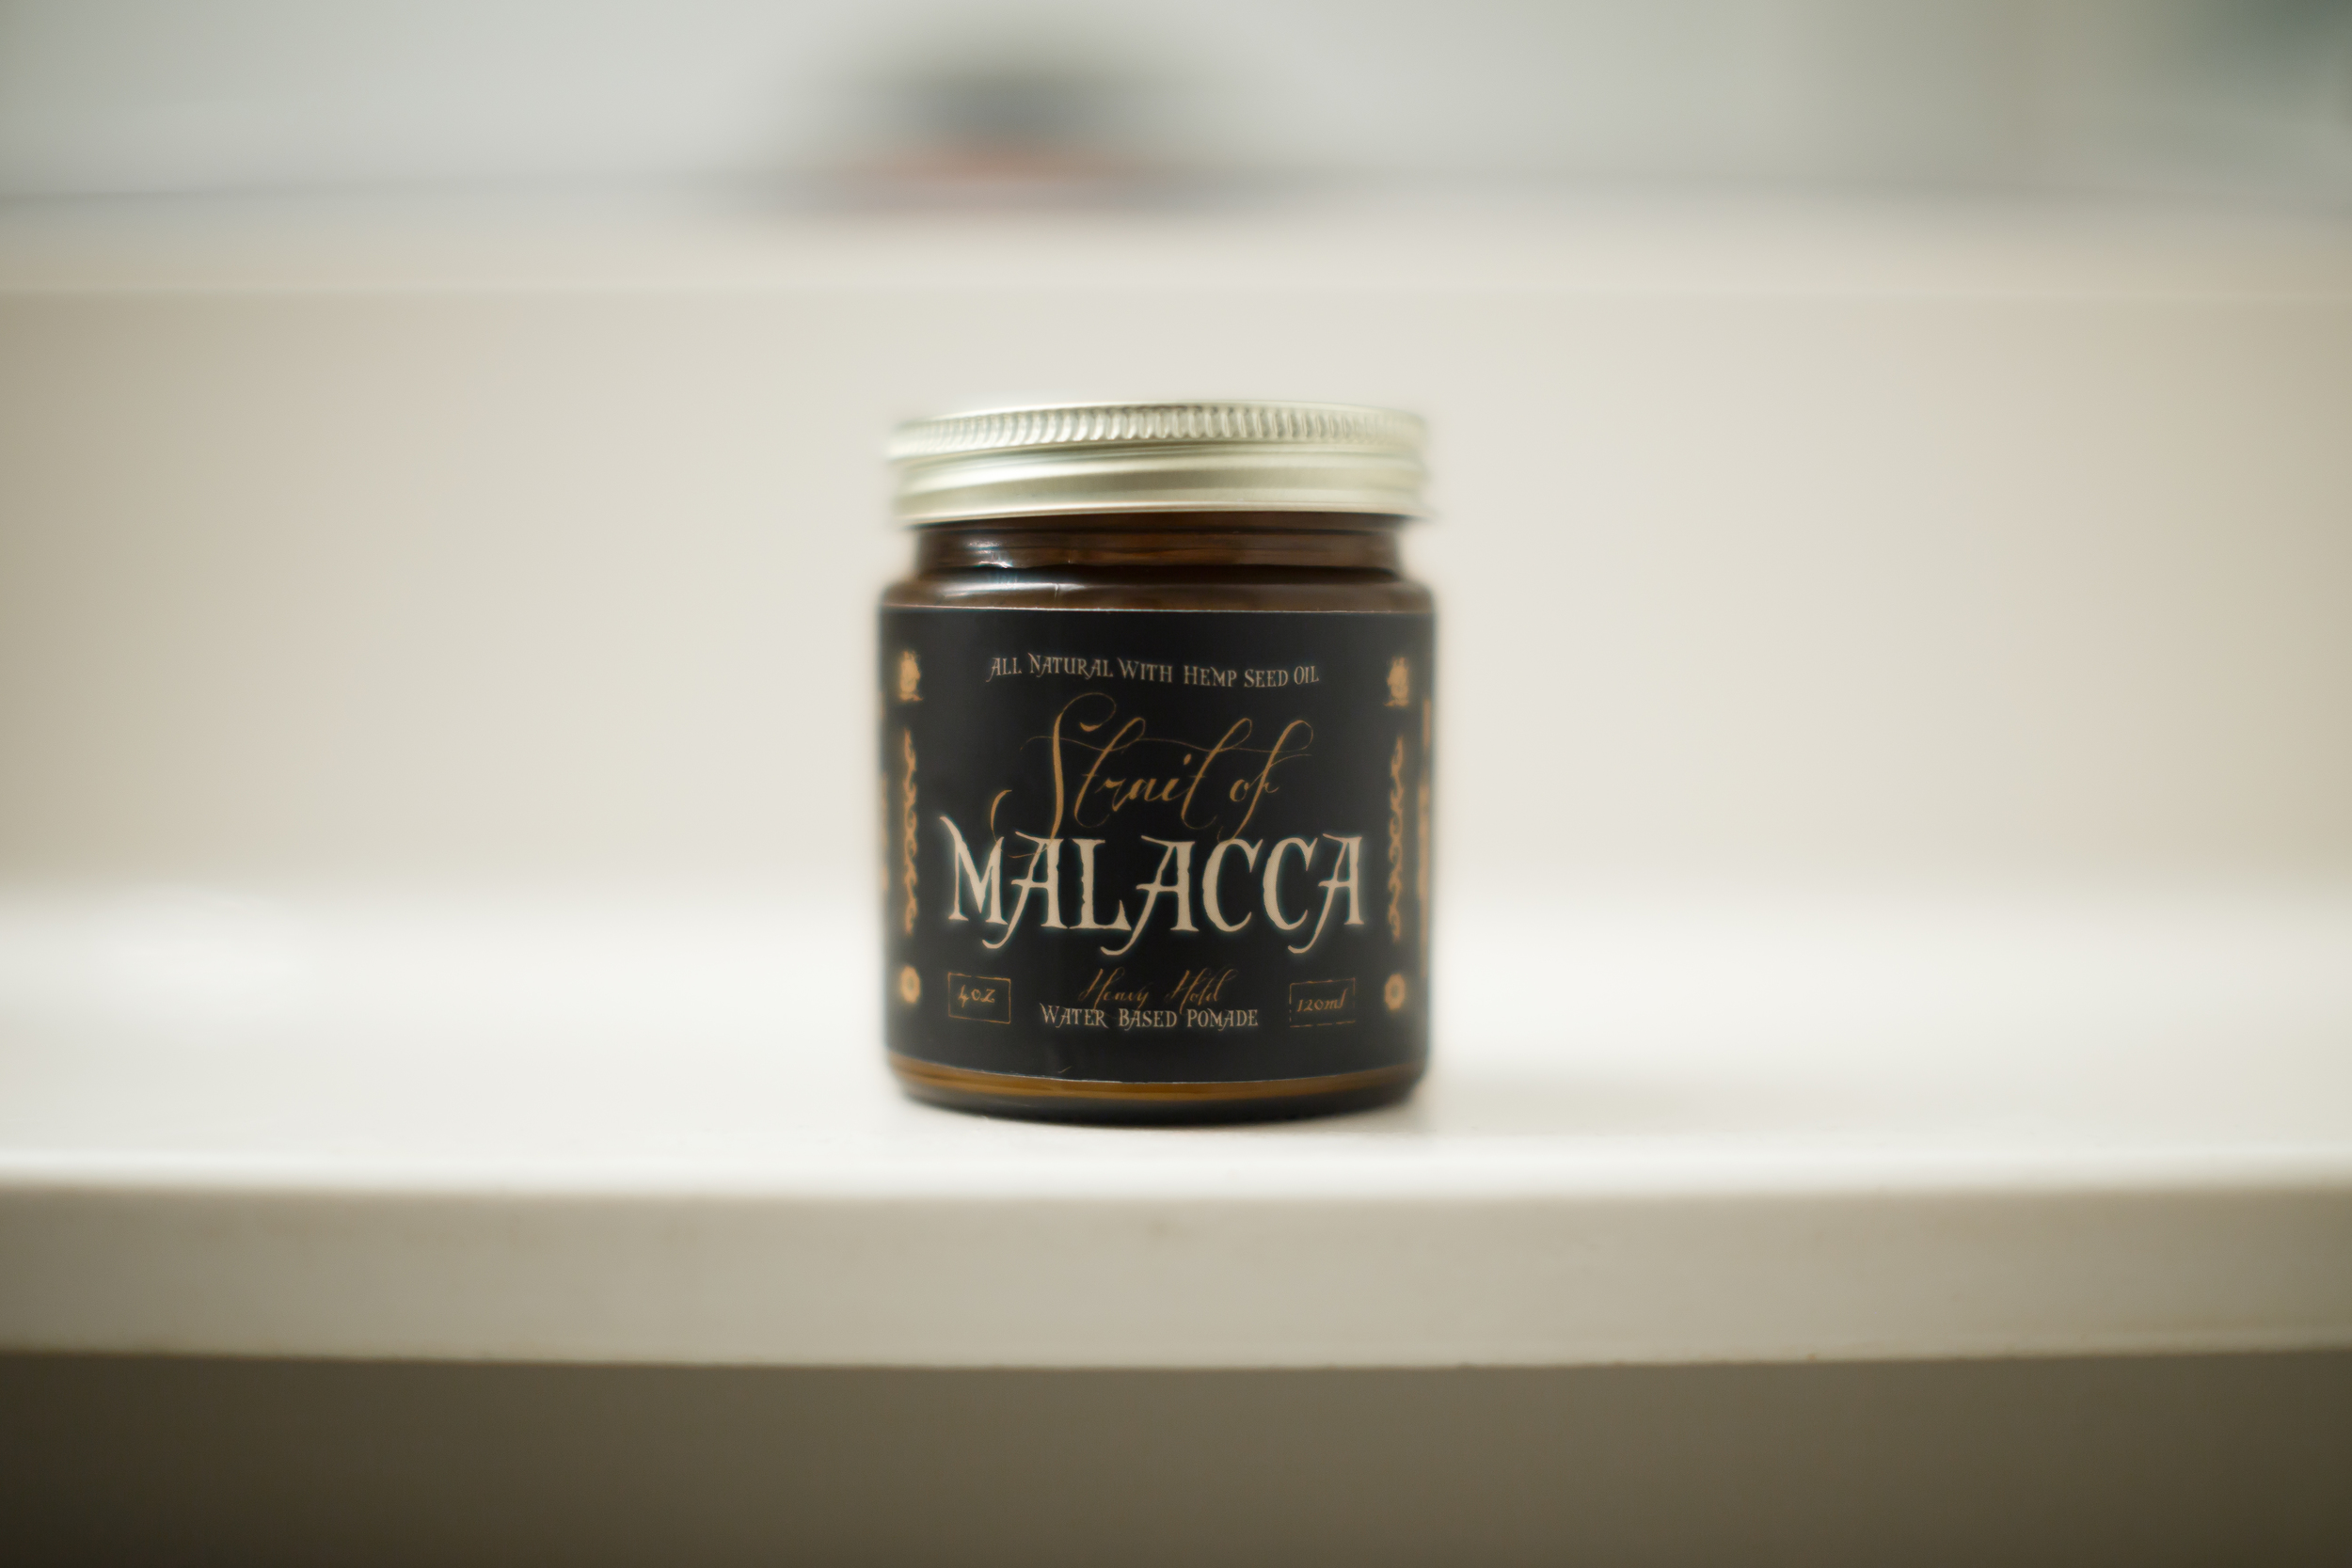 Flagship X Borneoil Straight of Malacca Pomade Review by The Pomp | Water-Based Heavy Hold